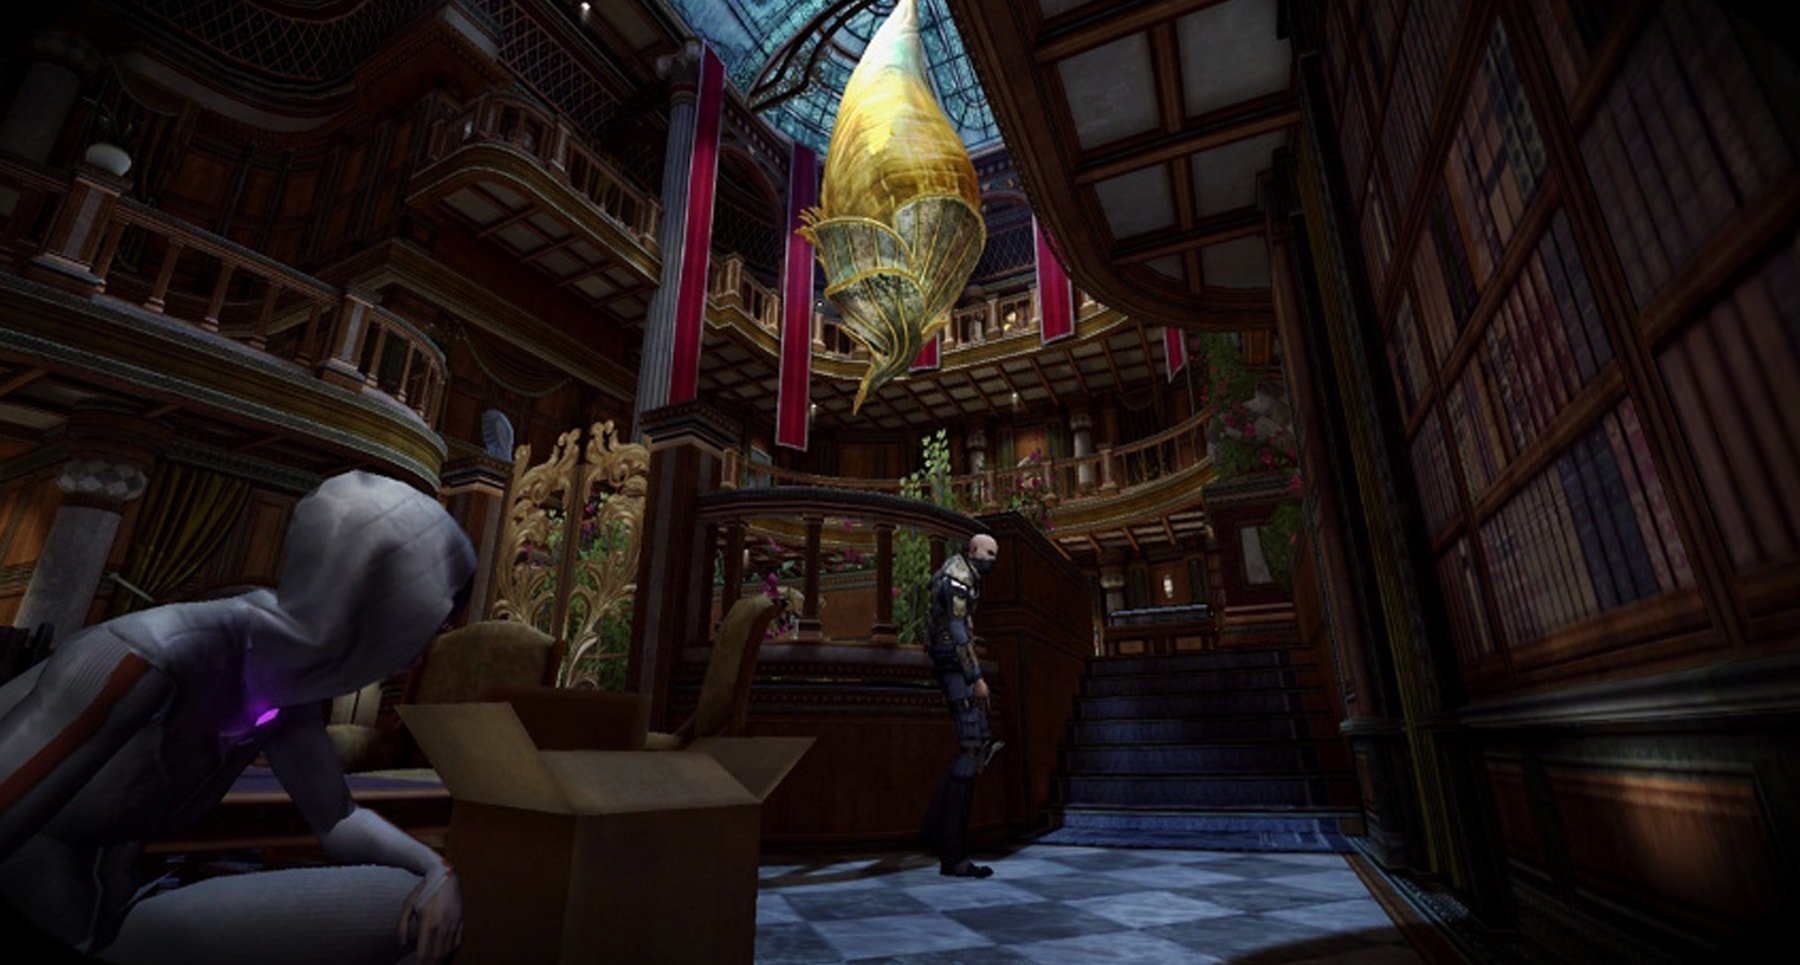 Screenshot from Republique of main character hope crouching behind boxes in a darkened chamber